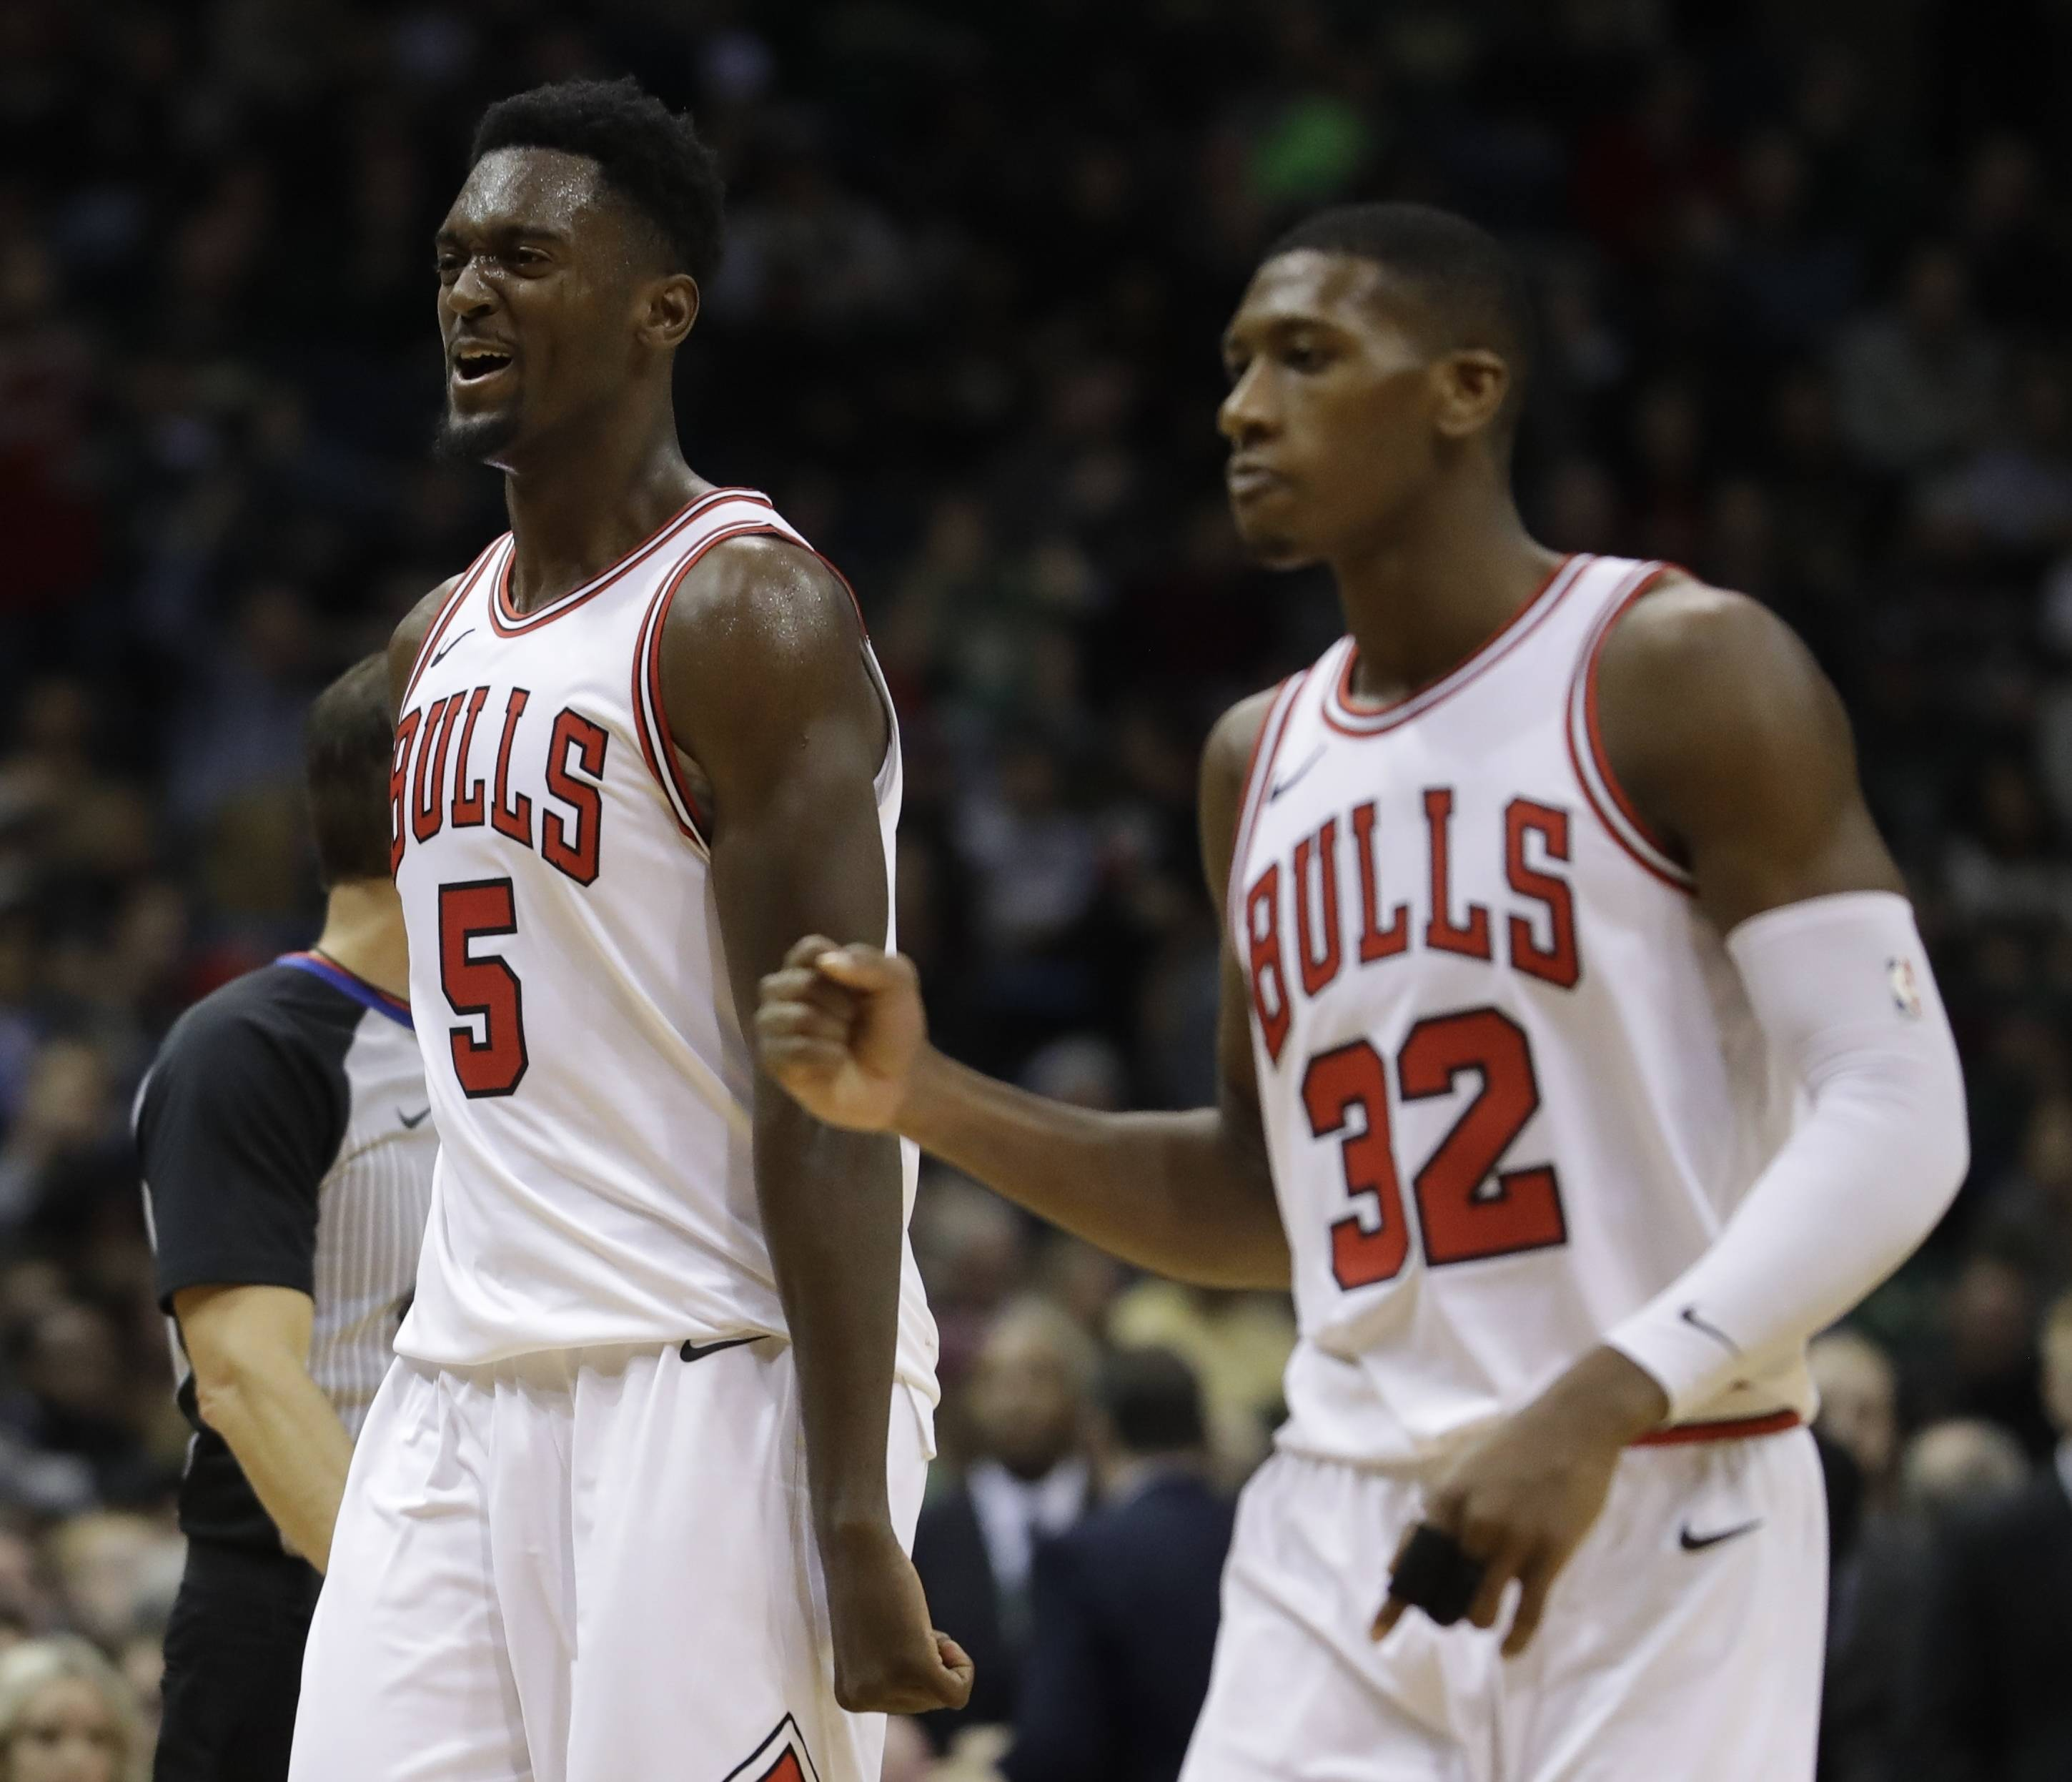 Chicago Bulls' Bobby Portis (5) and Kris Dunn celebrate in the final minutes against the Milwaukee Bucks Friday in Milwaukee. The Bulls won 115-109, running the team's win streak to 5.